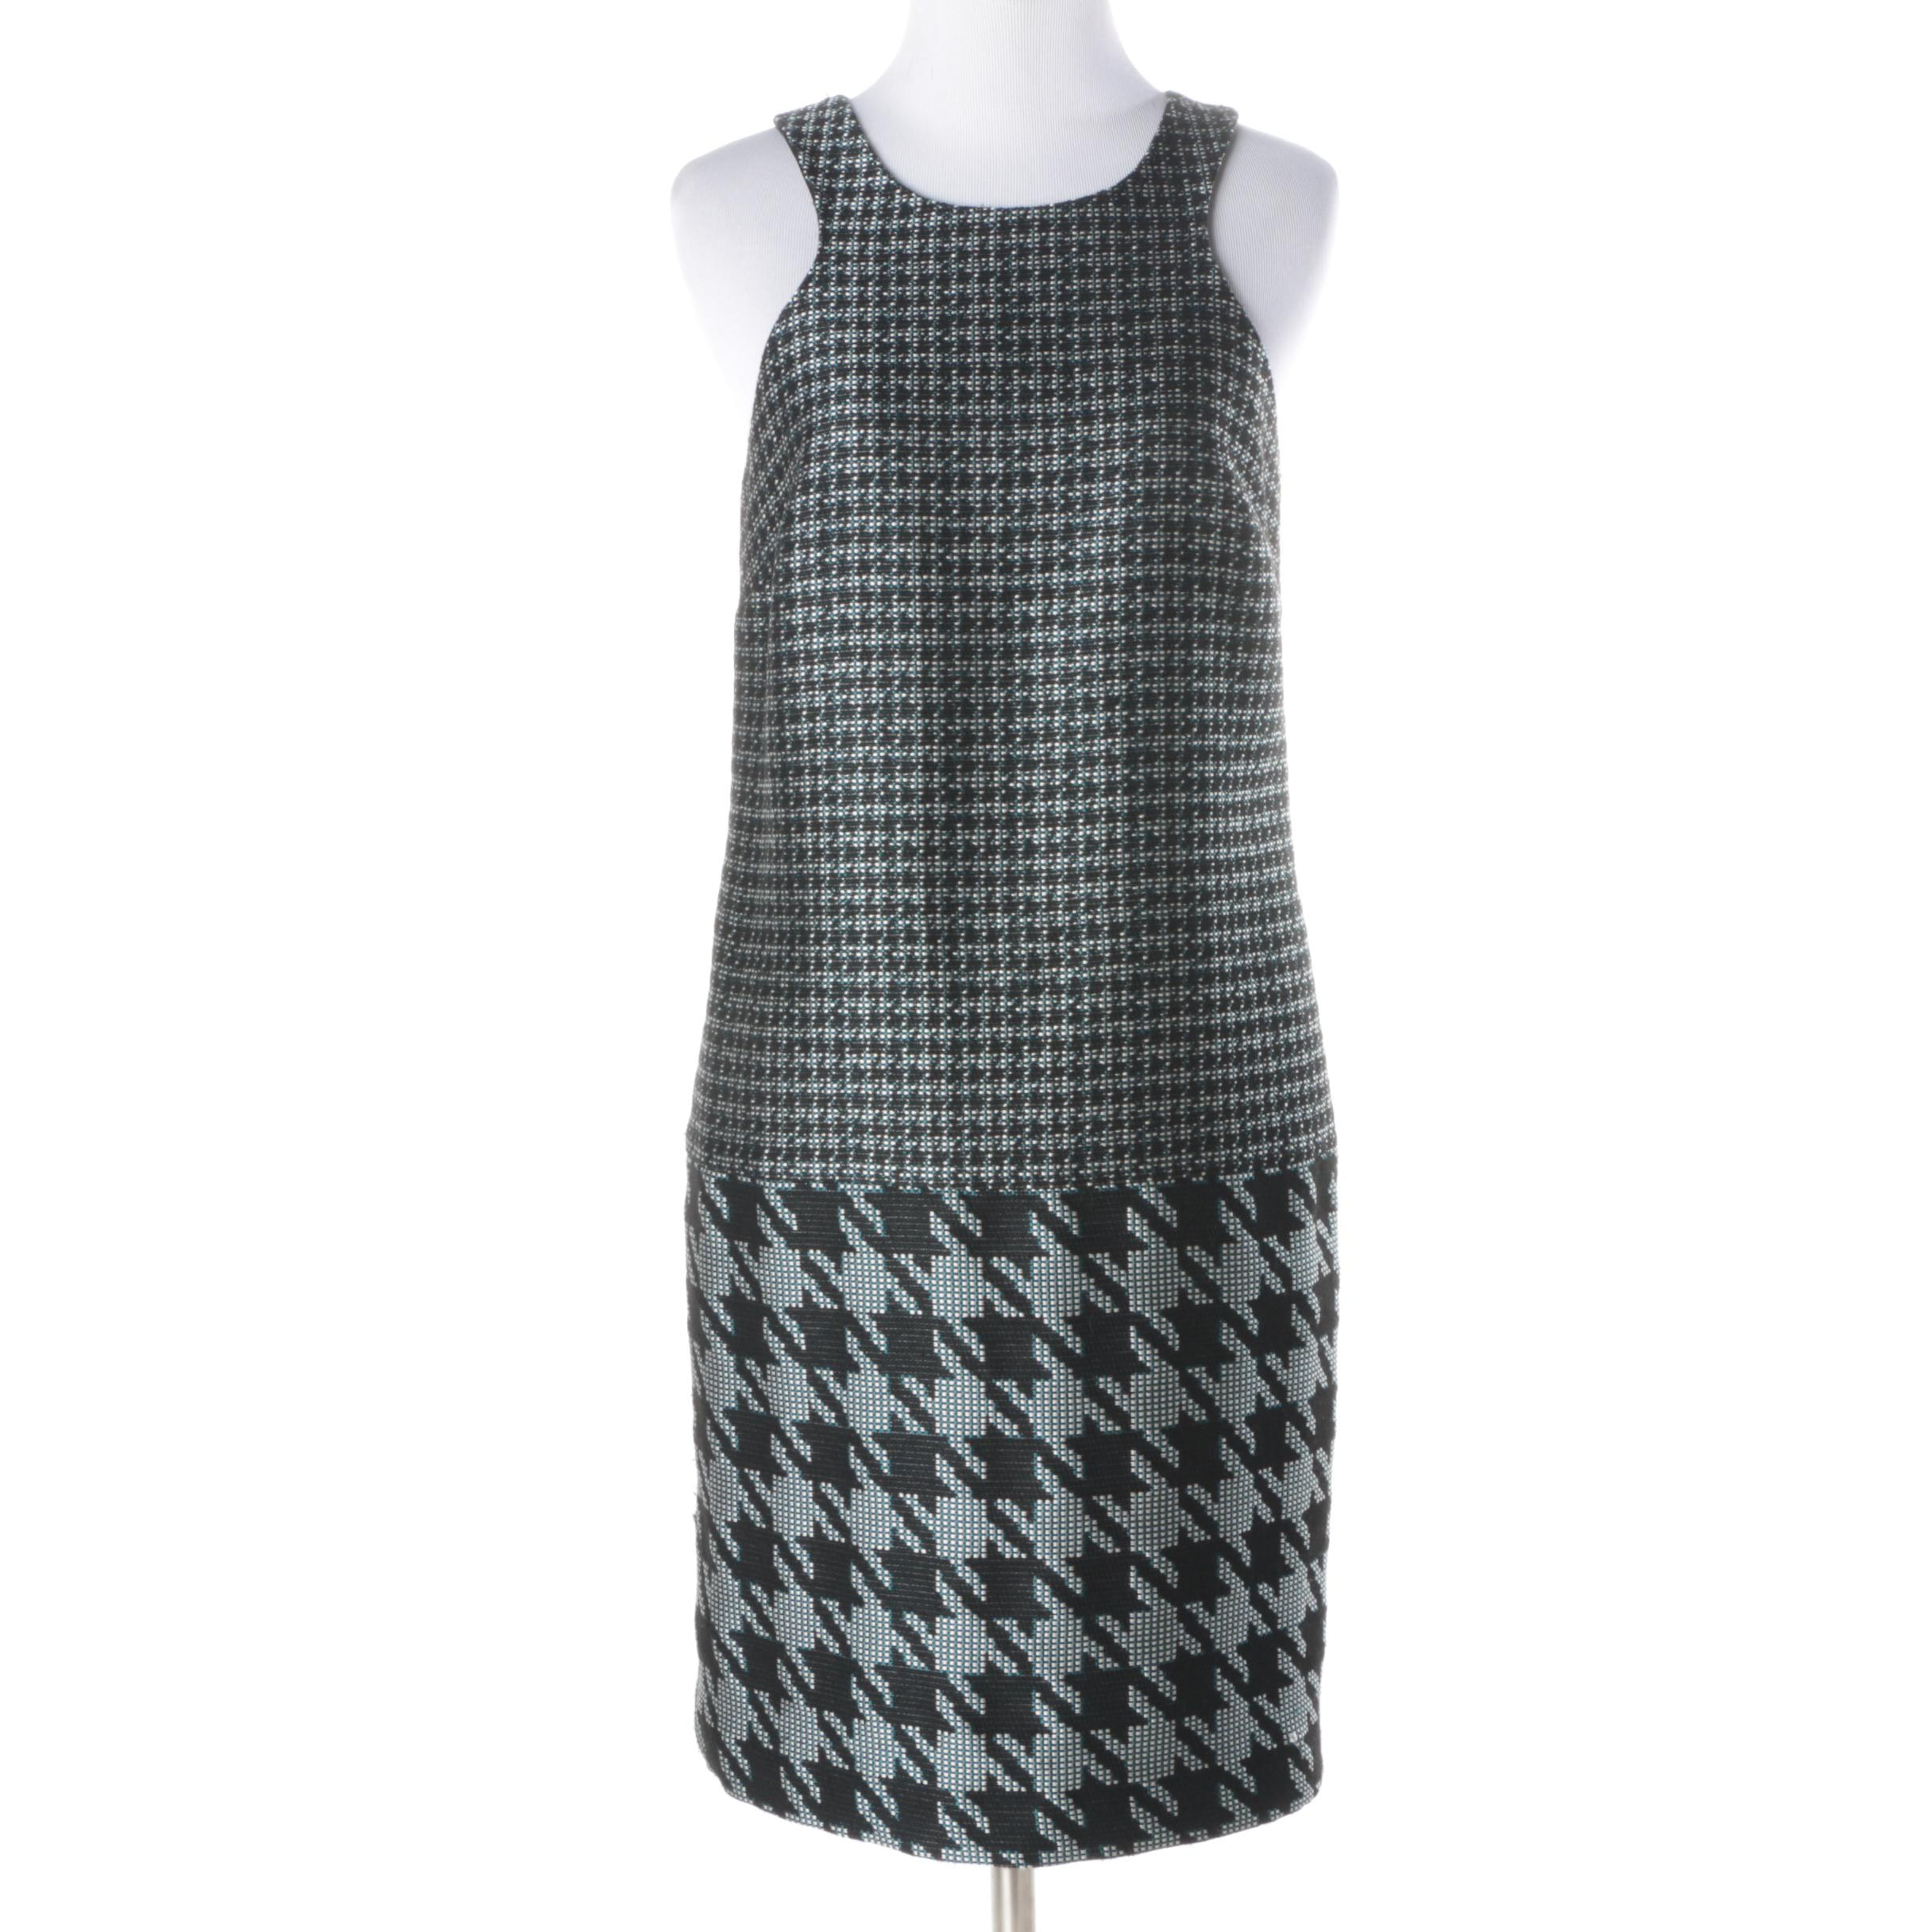 Trina Turk Teal and Black Houndstooth Dress